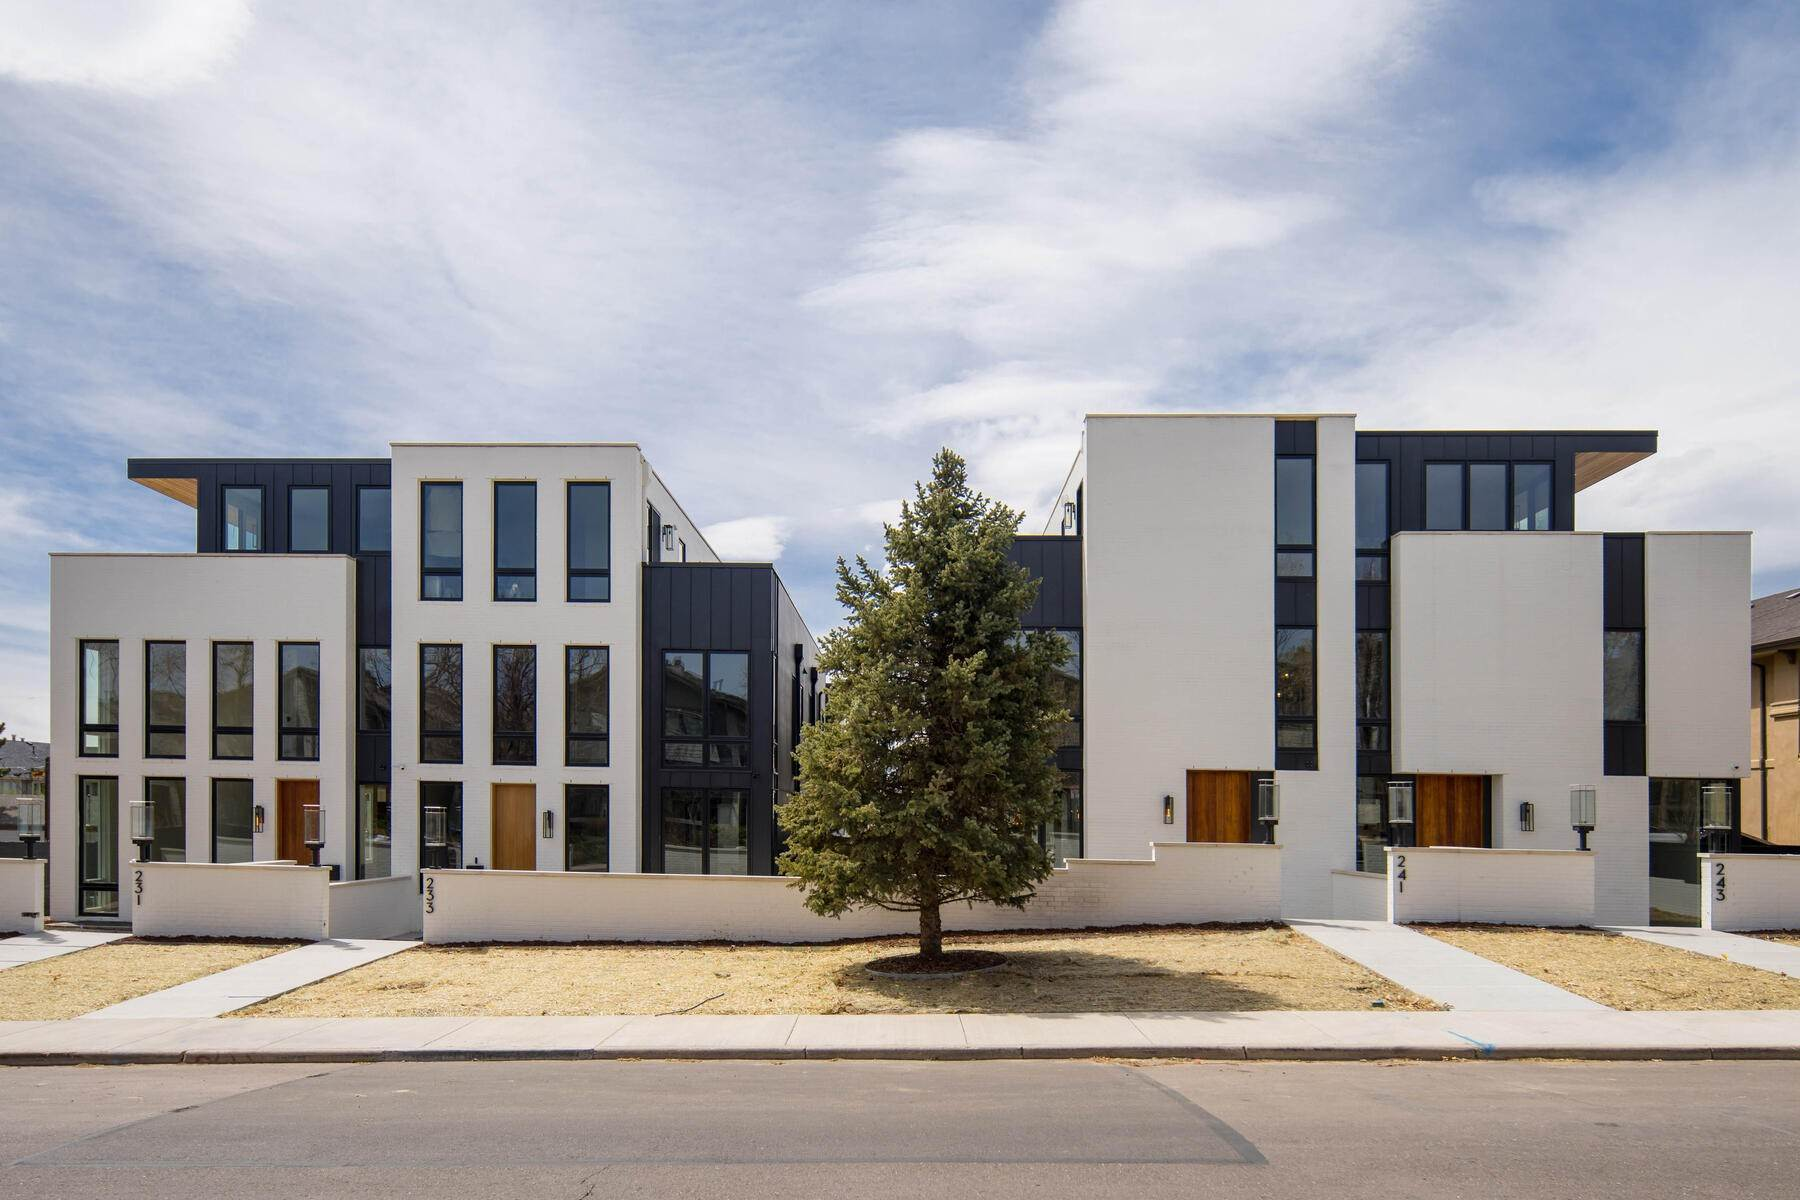 townhouses for Active at Exquisite Attached Urban Residence 221 Garfield Street Denver, Colorado 80209 United States